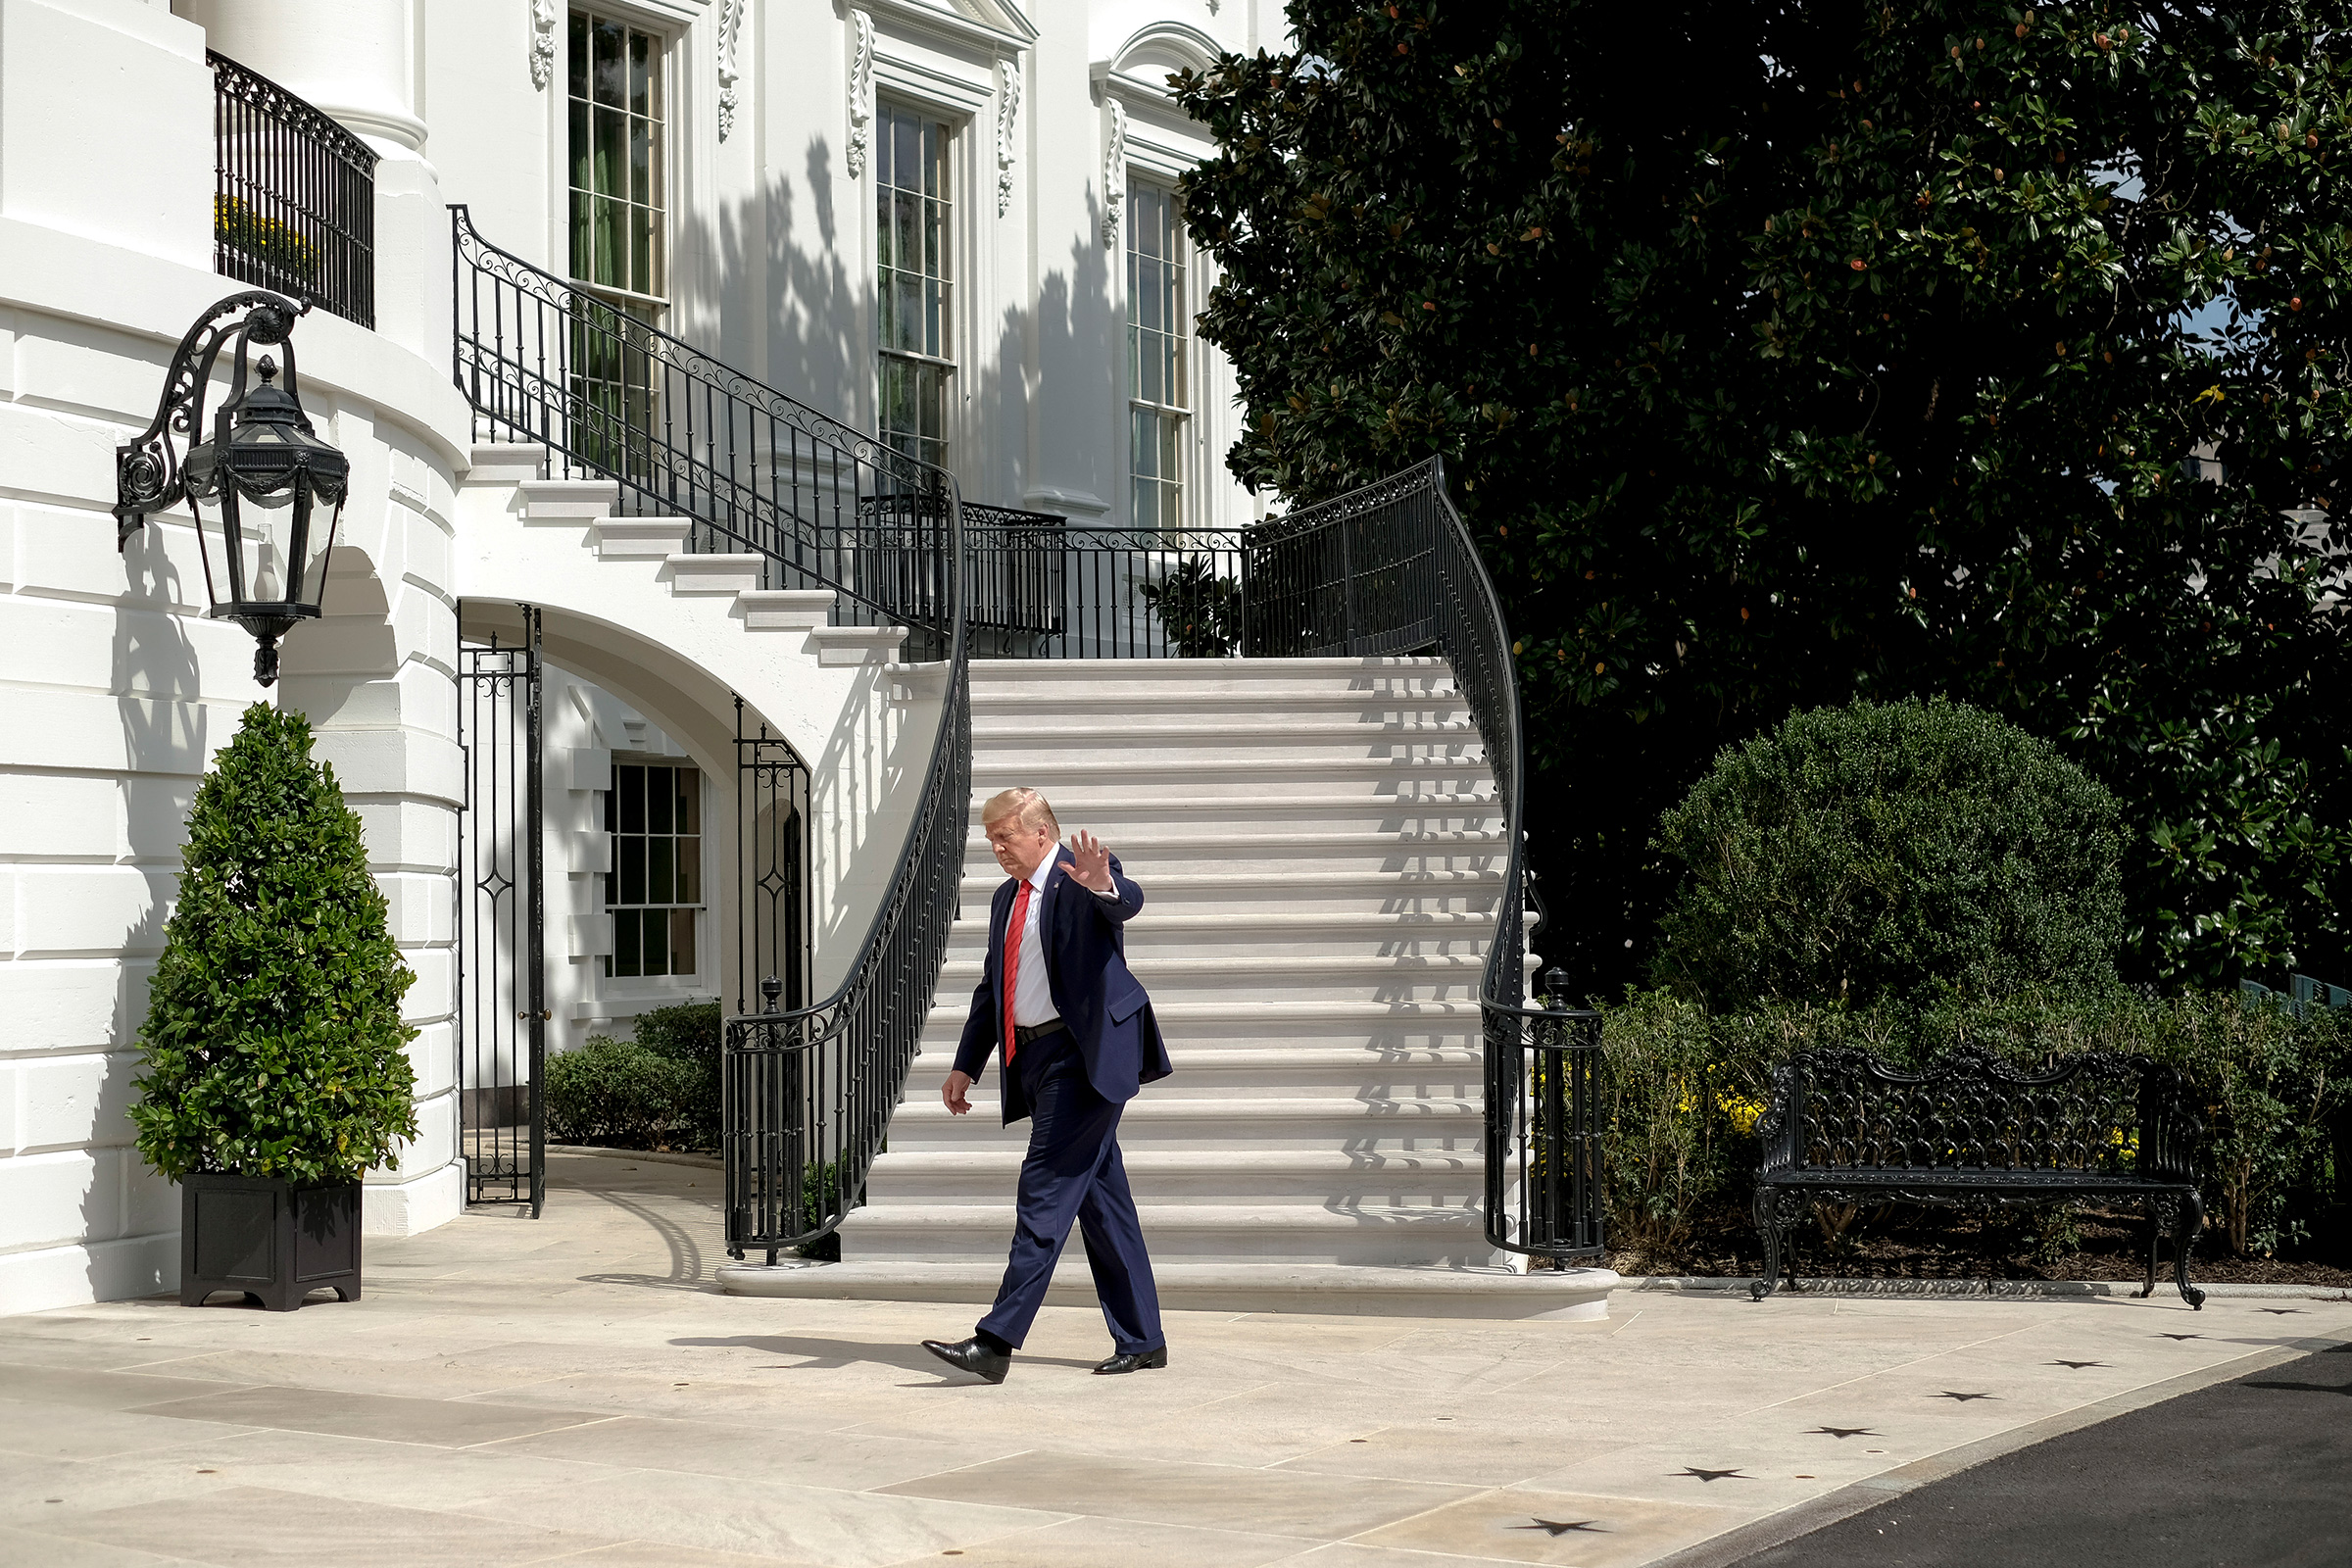 President Donald Trump arrives at the White House in Washington, D.C. on Sept. 26, 2019.